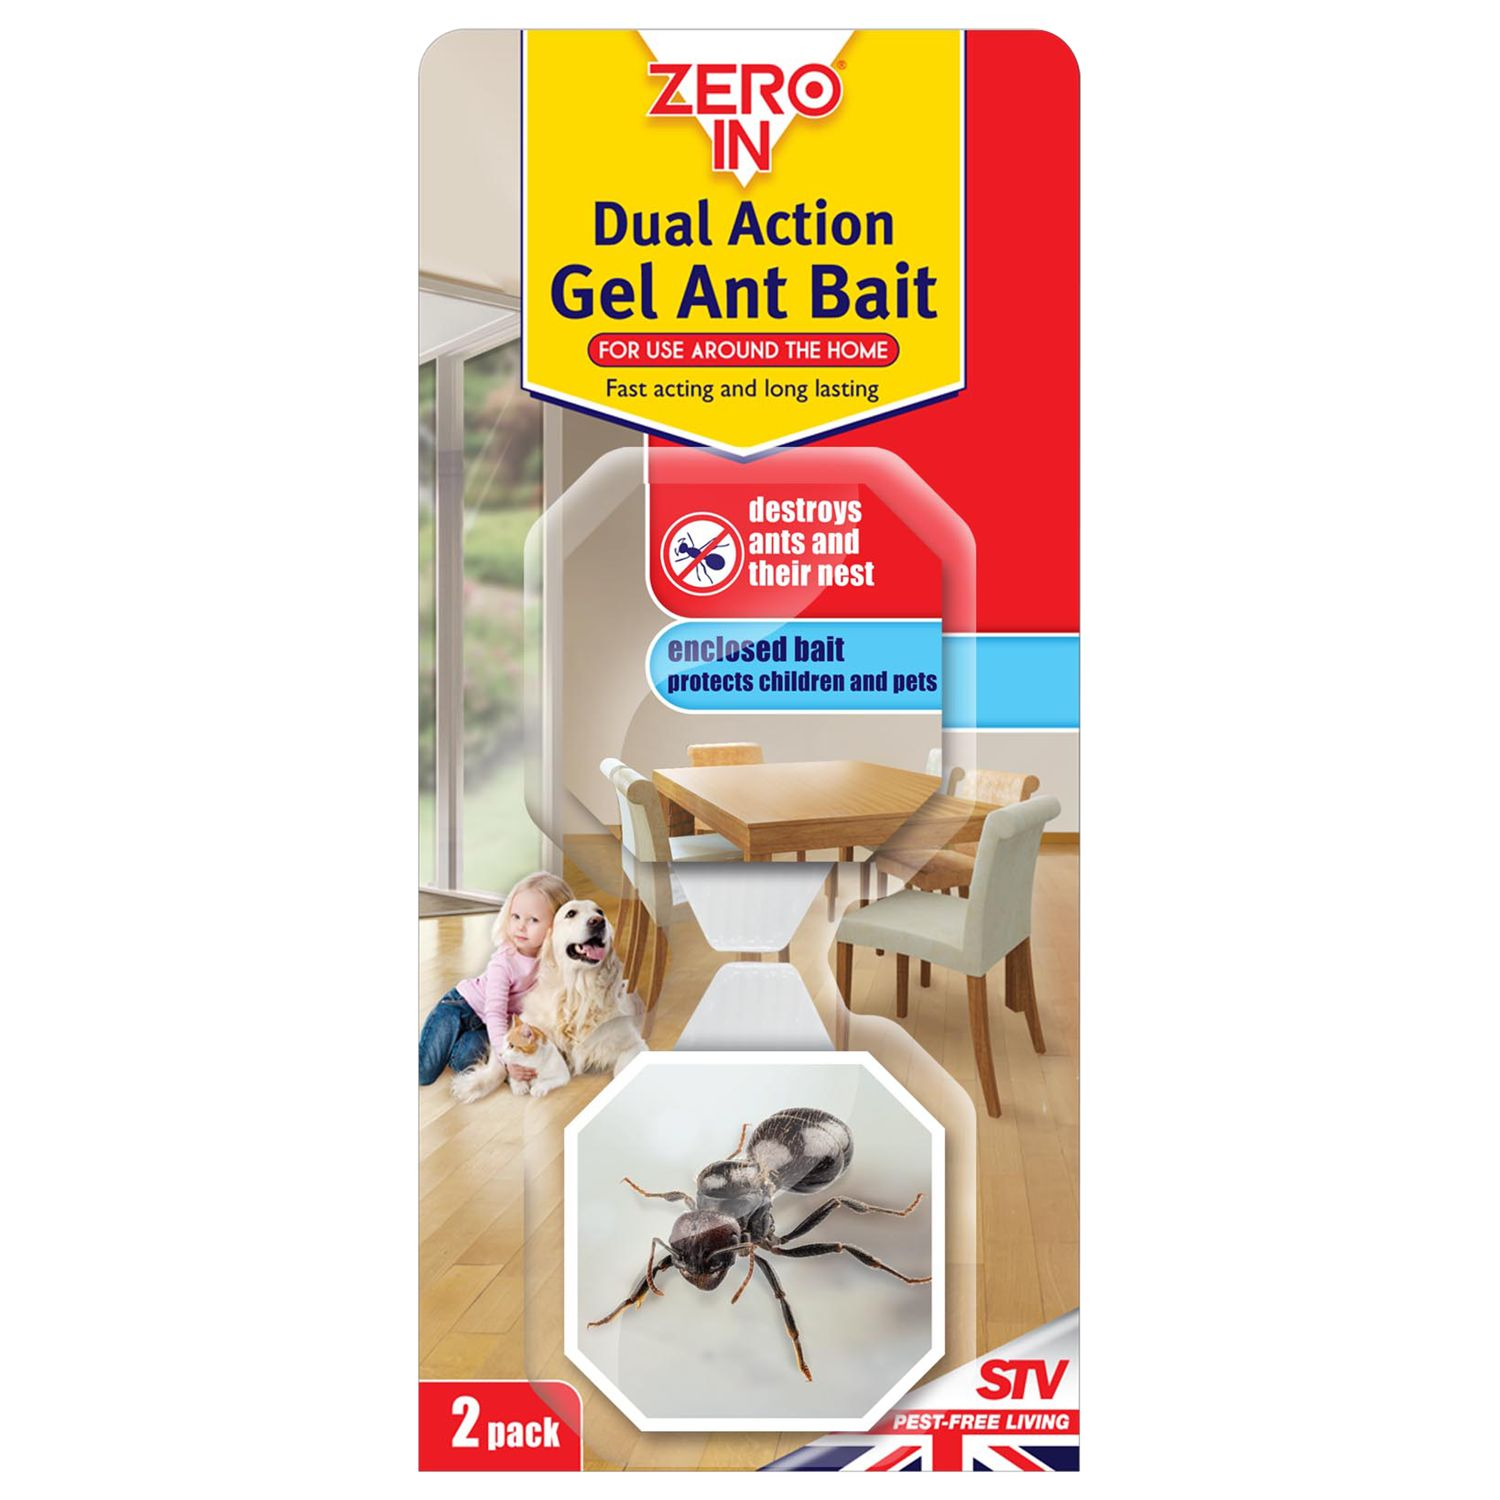 Zeroin Dual Action Ant Bait Gel, Pack of 2